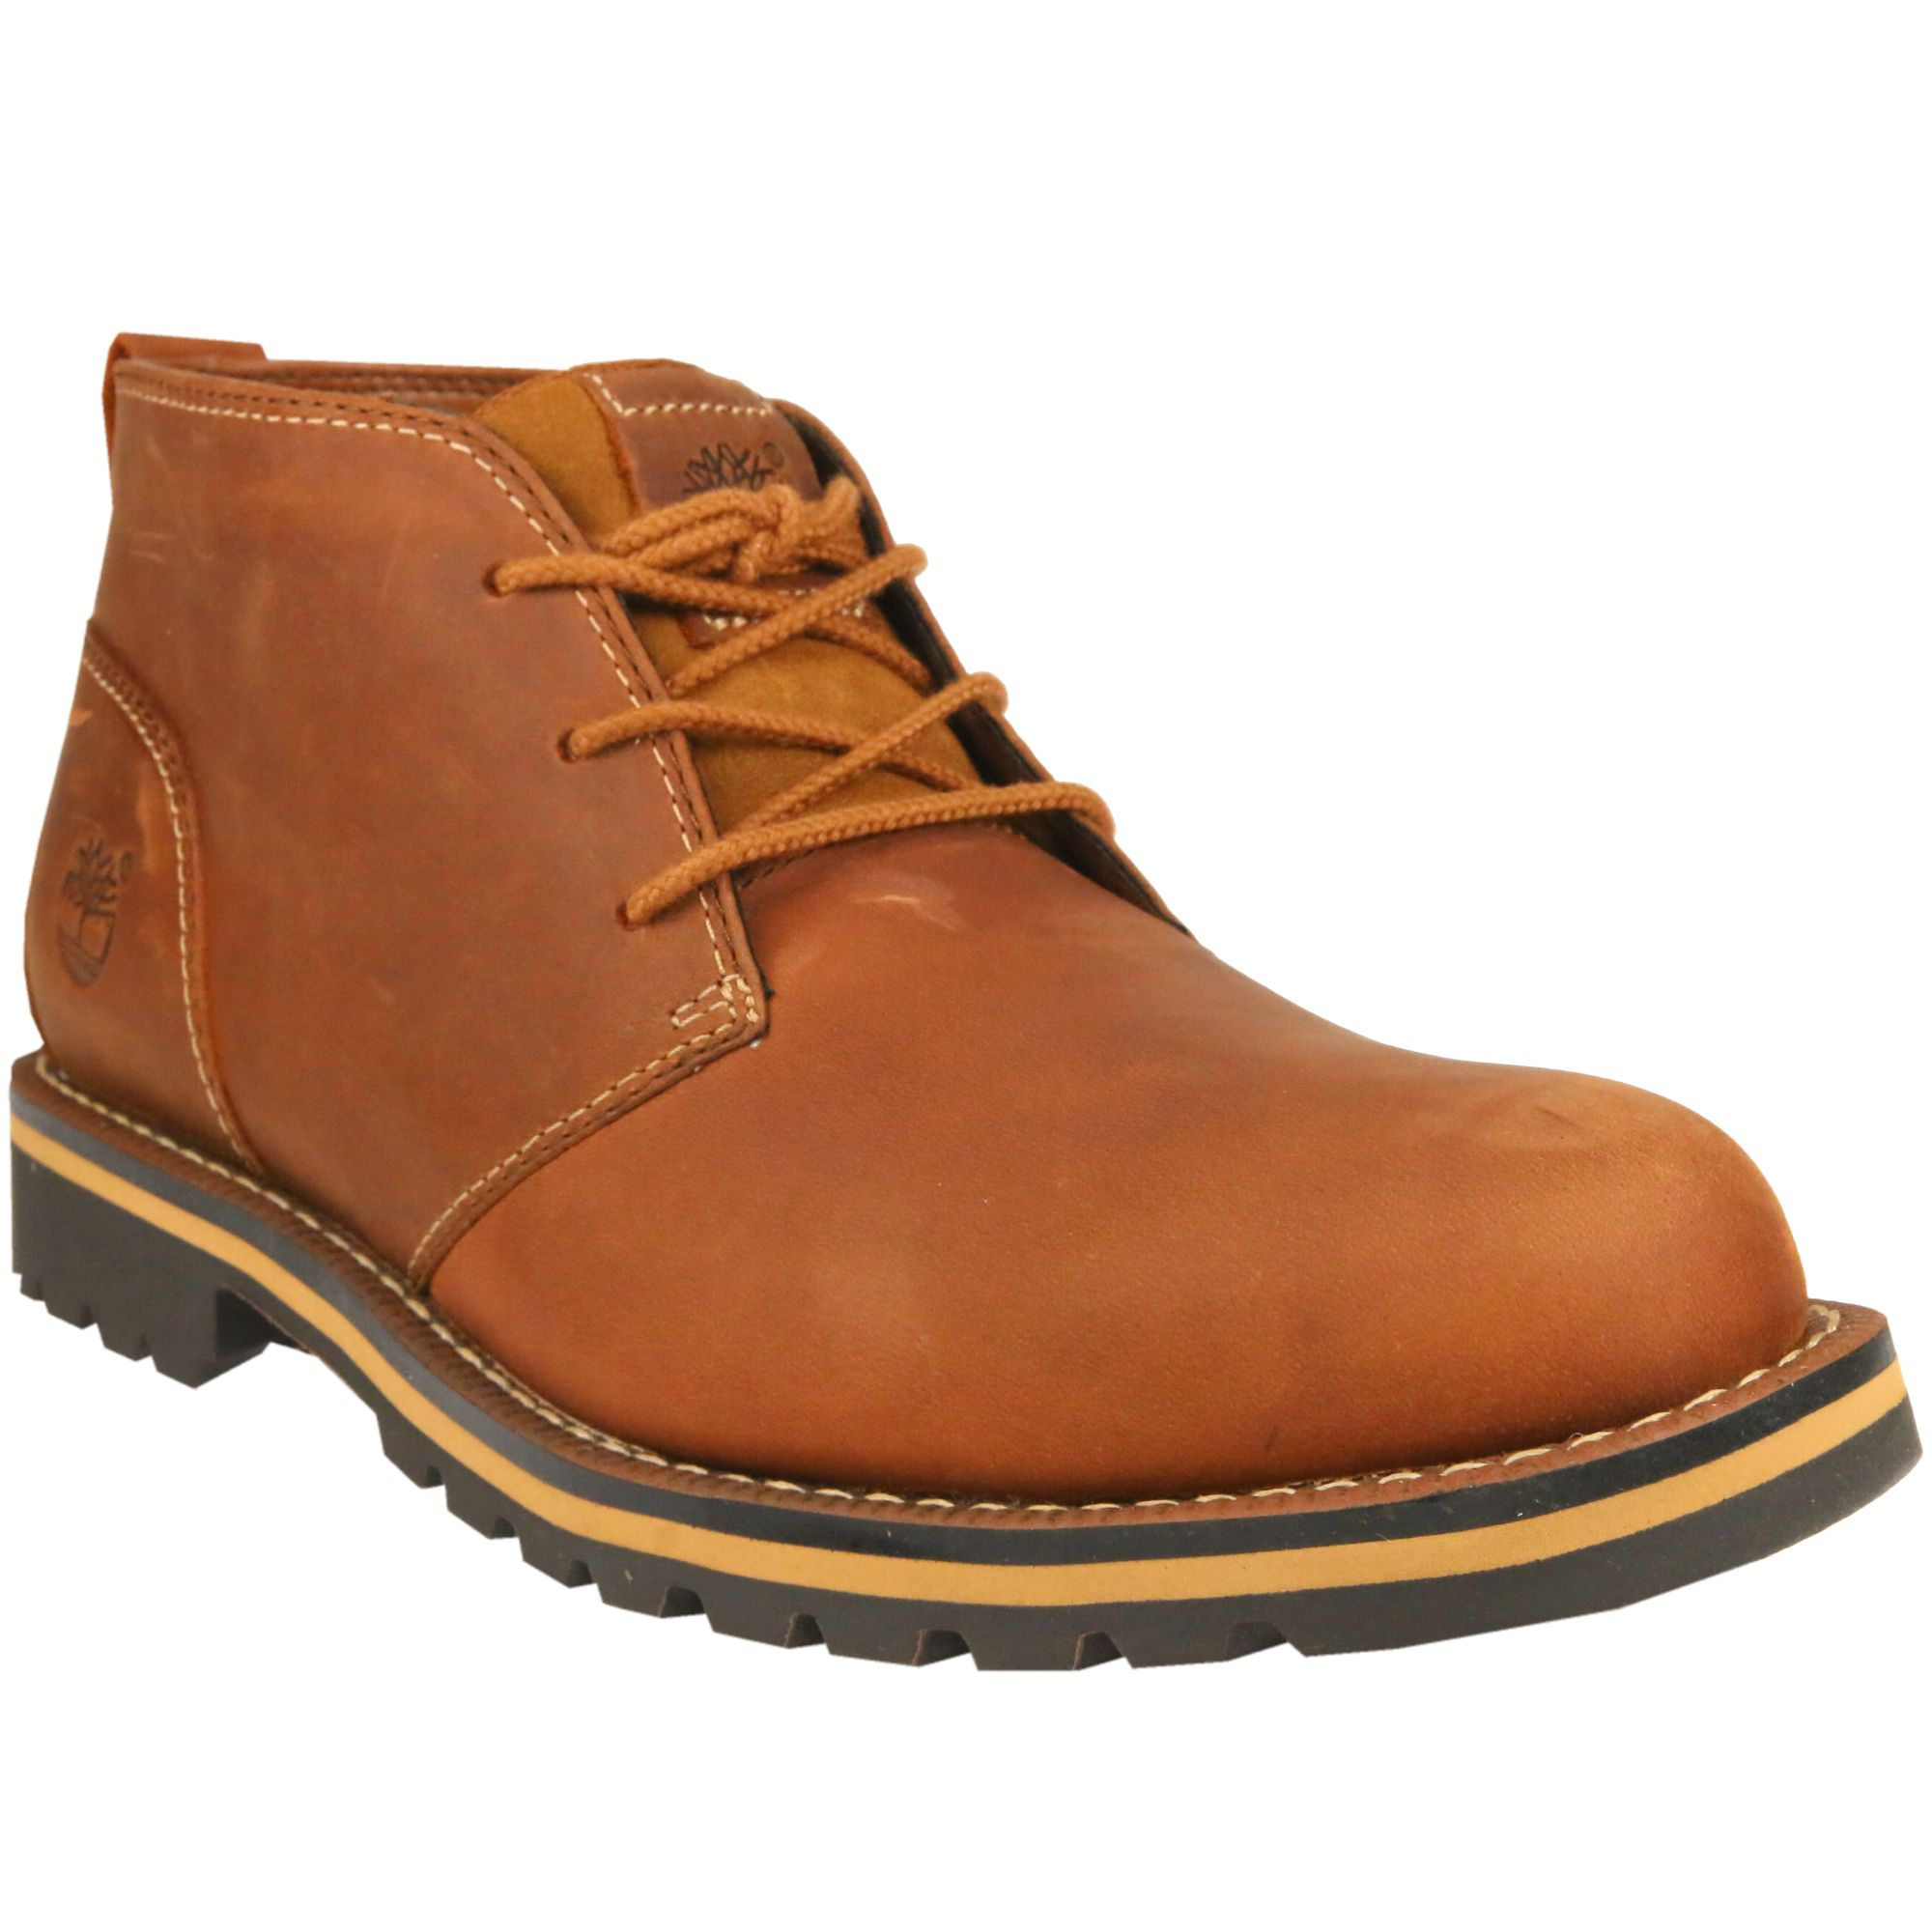 Men's Casual Boots. Be ready for any adventure – from the office park to the actual park – in men's chukka boots from Sperry. Our wide selection of men's casual boots is designed to keep you steady, comfortable and stylish wherever your journey takes you.